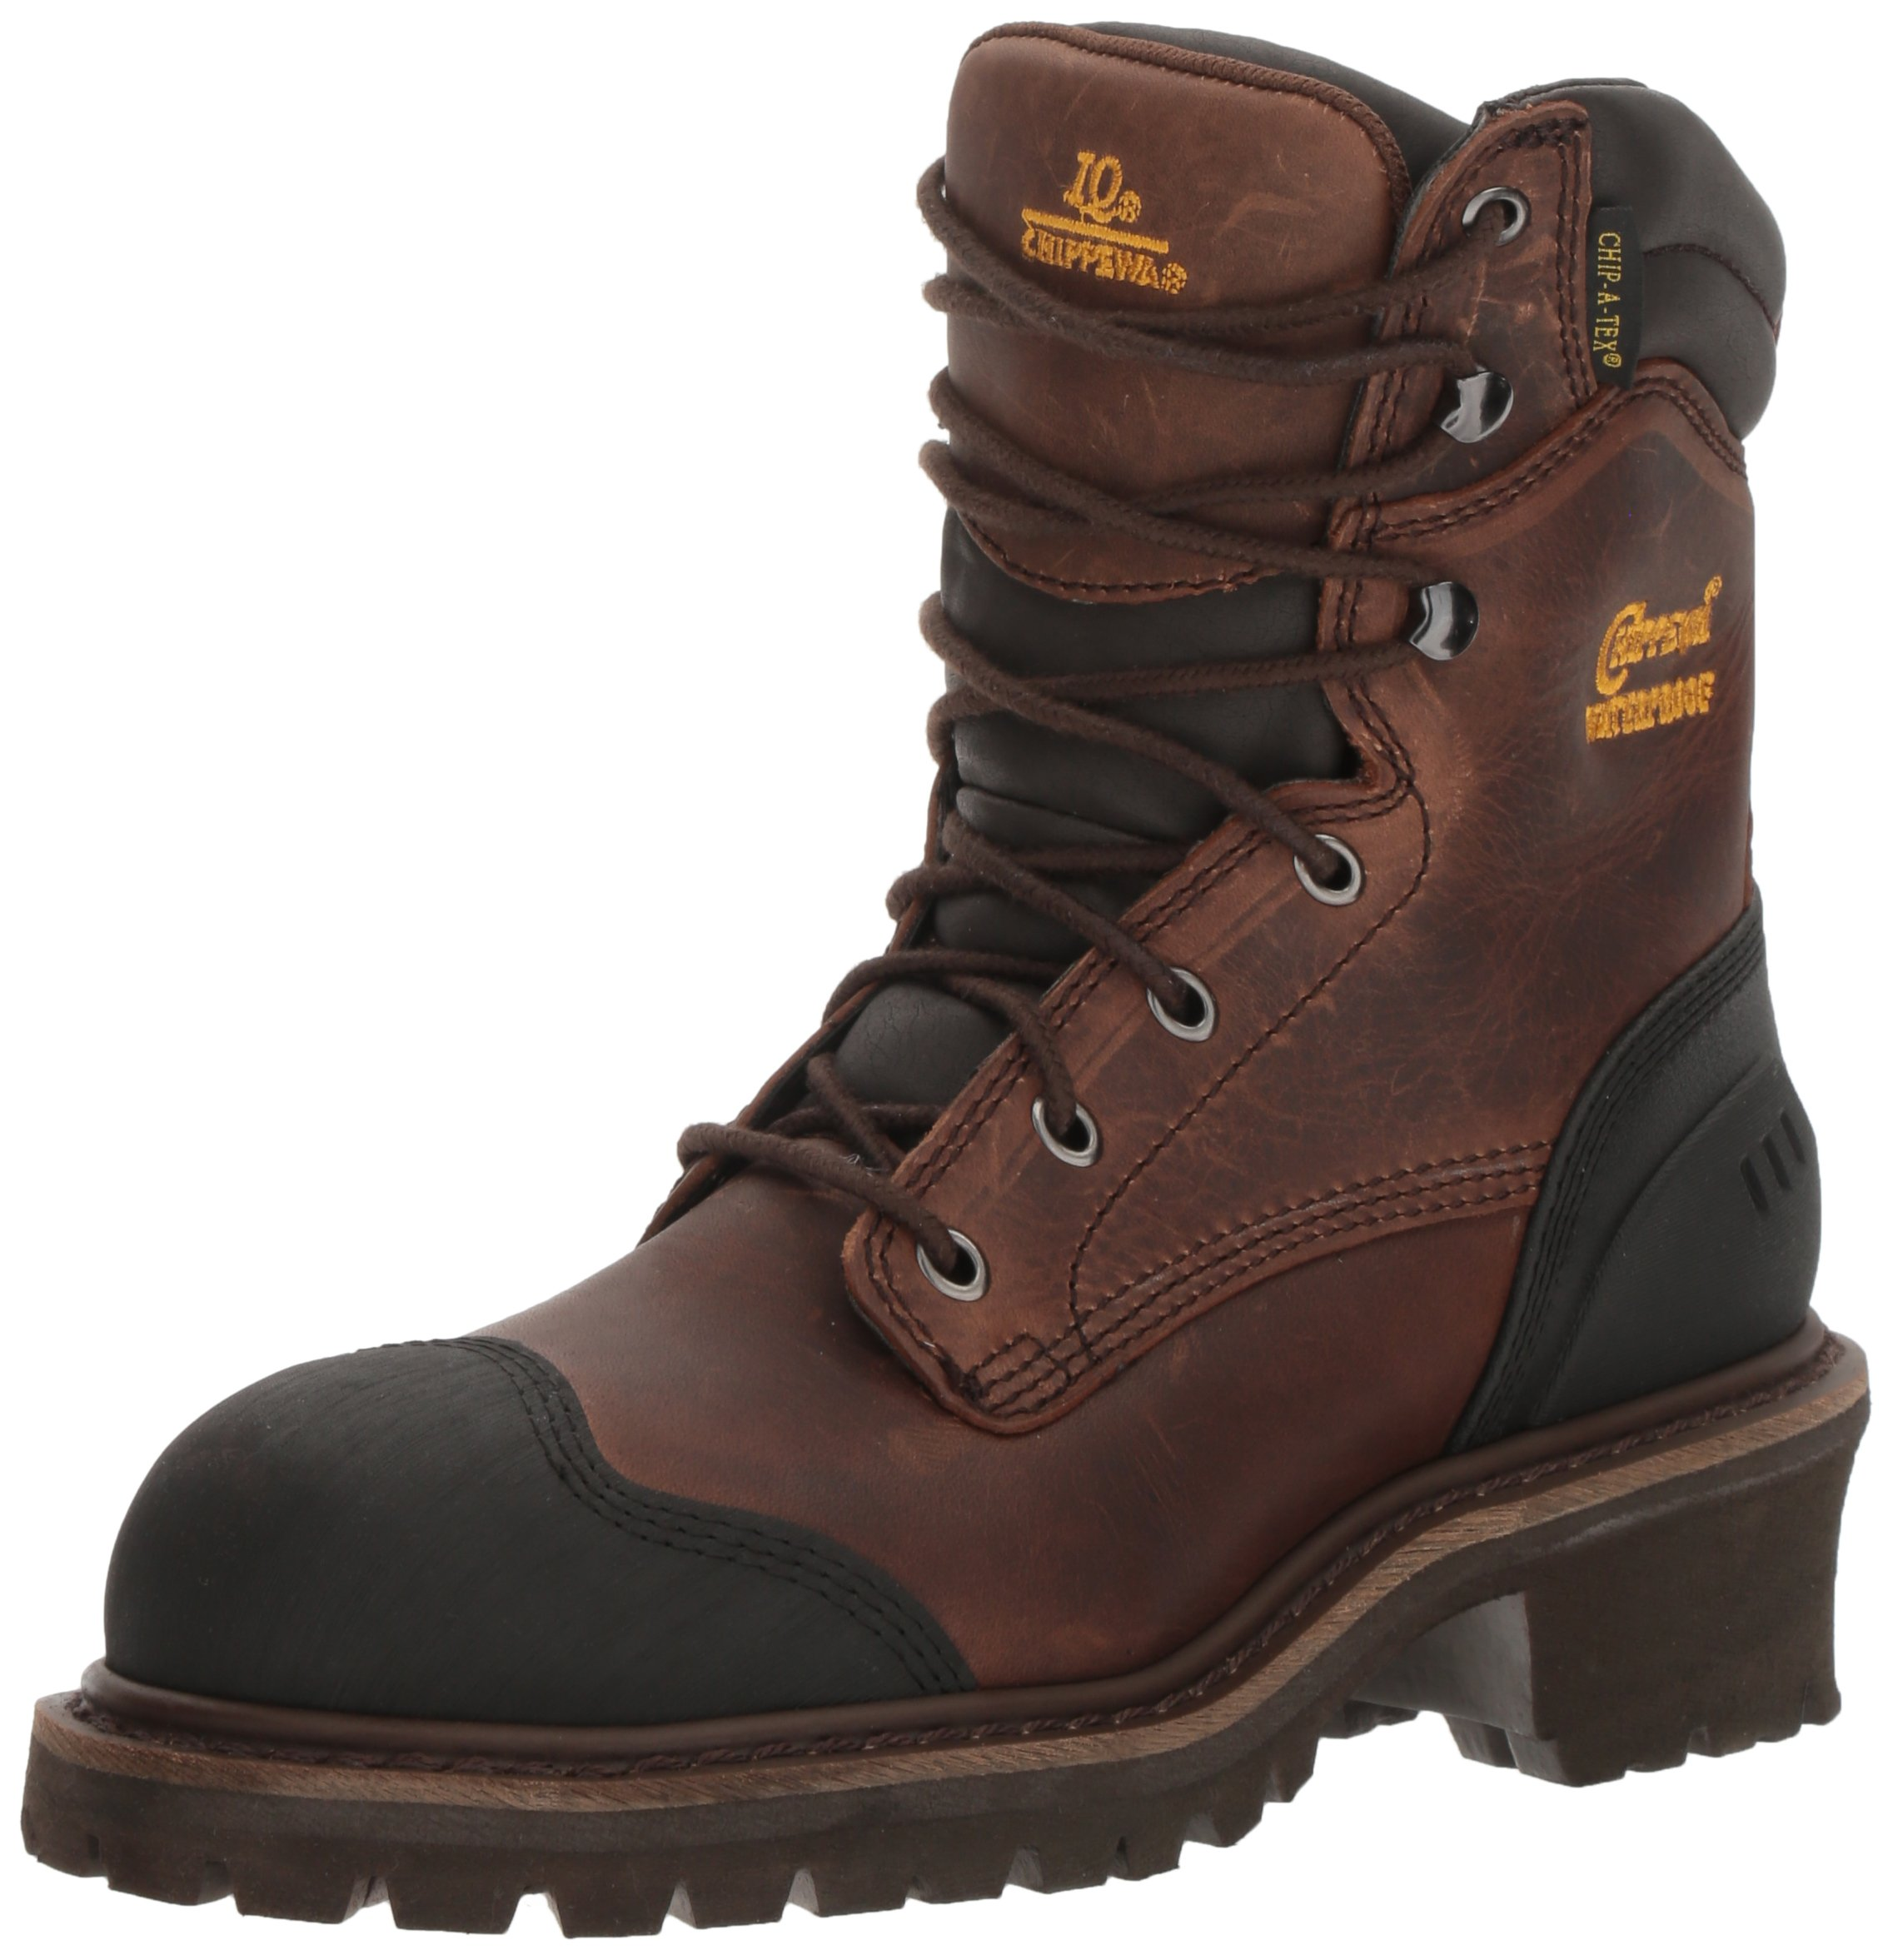 Chippewa Men's 8 Inch Chocolate Oiled Waterproof Comp Toe Logger Boot,Brown,8.5 M US